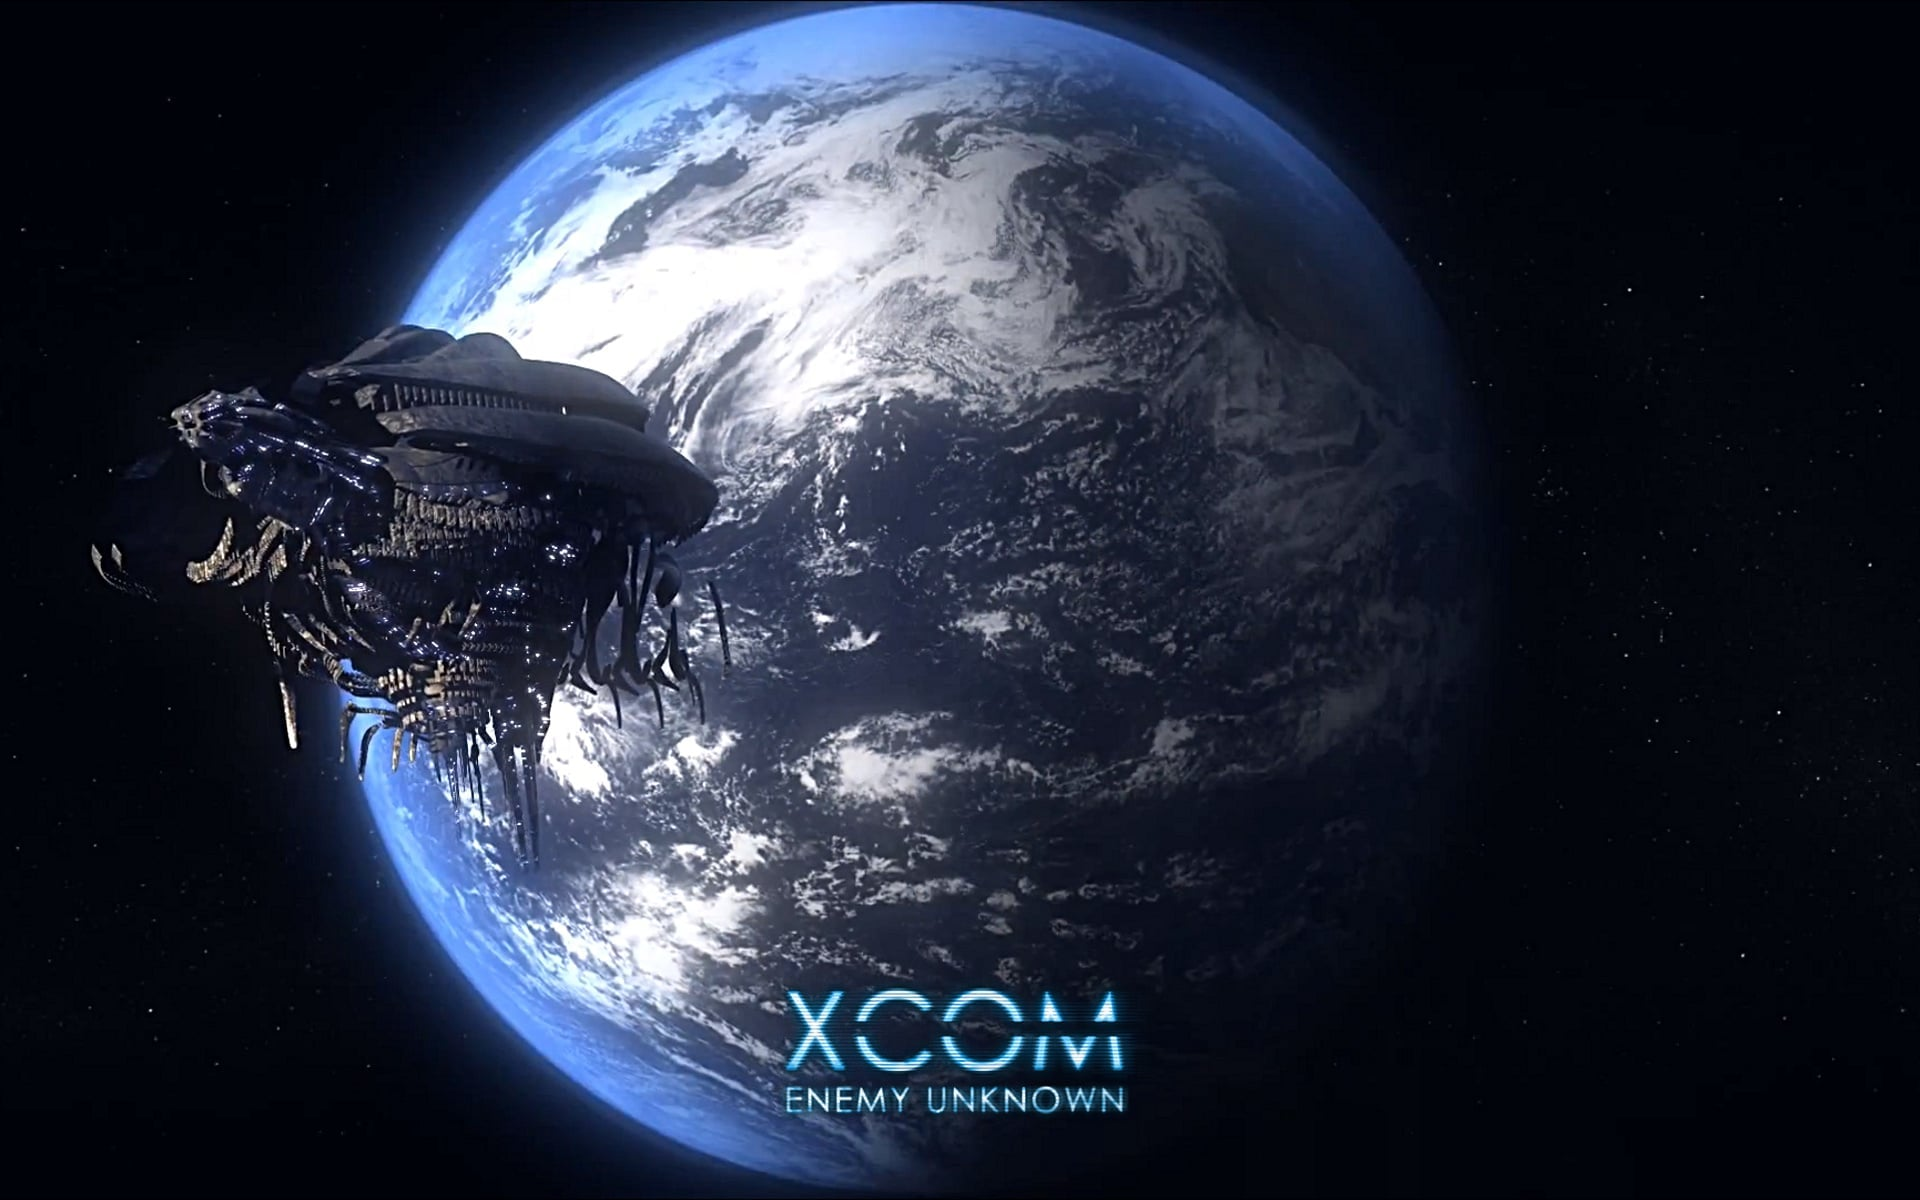 xcom wallpaper 1200 | olivero